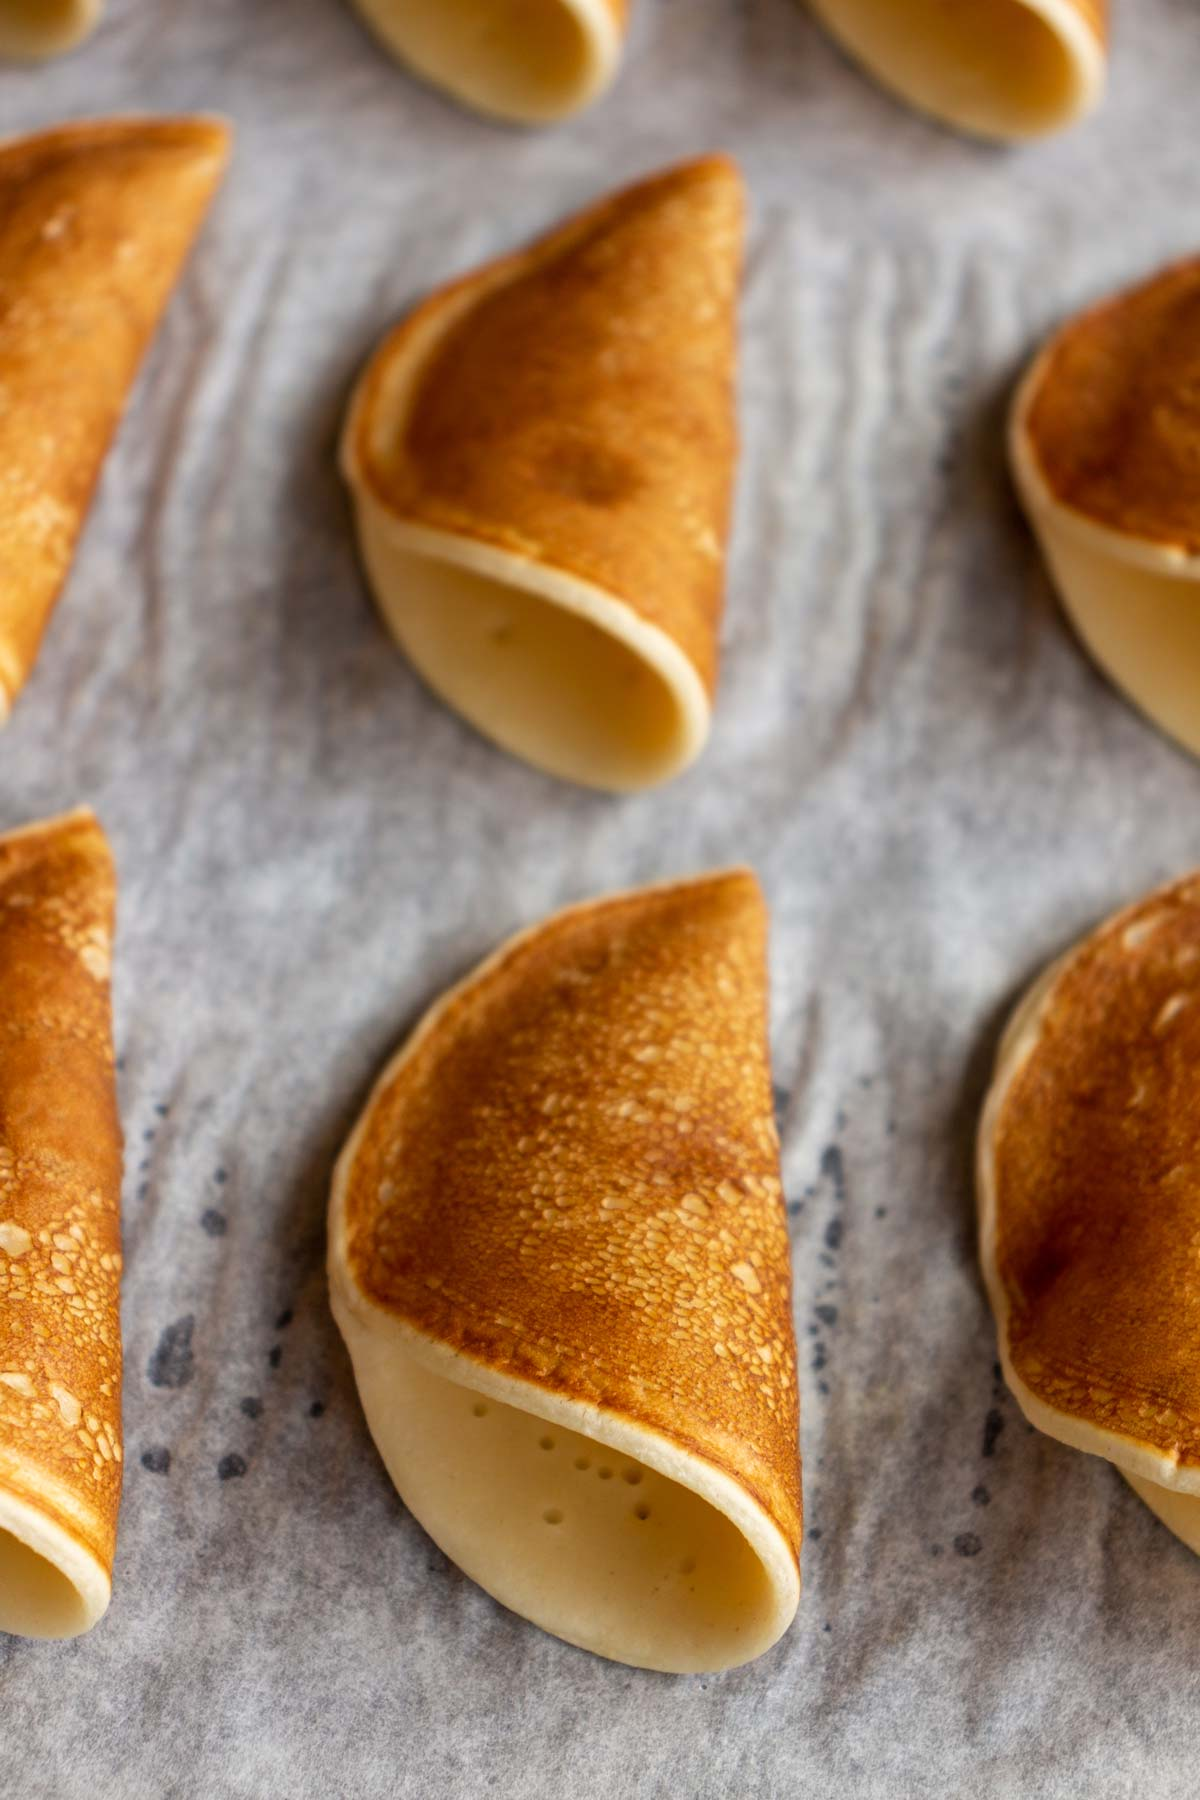 Cone shaped qatayef pancakes resting on their sides on parchment paper.